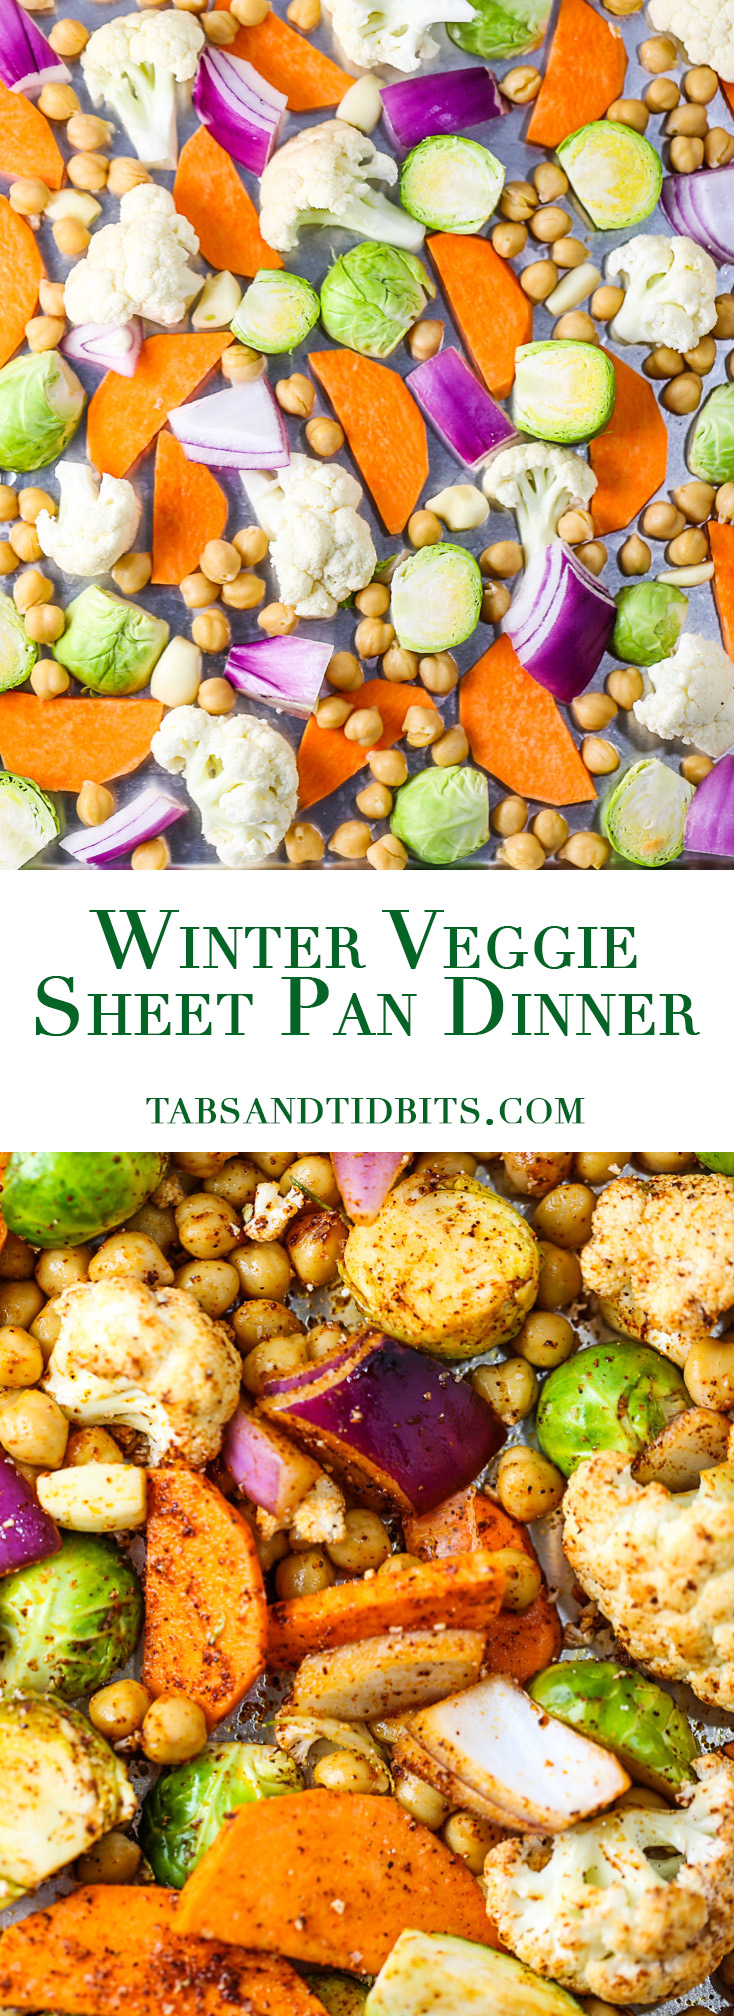 Winter Veggie Sheet Pan Dinner - A flavorful combination of seasonal veggies and chickpeas for added protein.